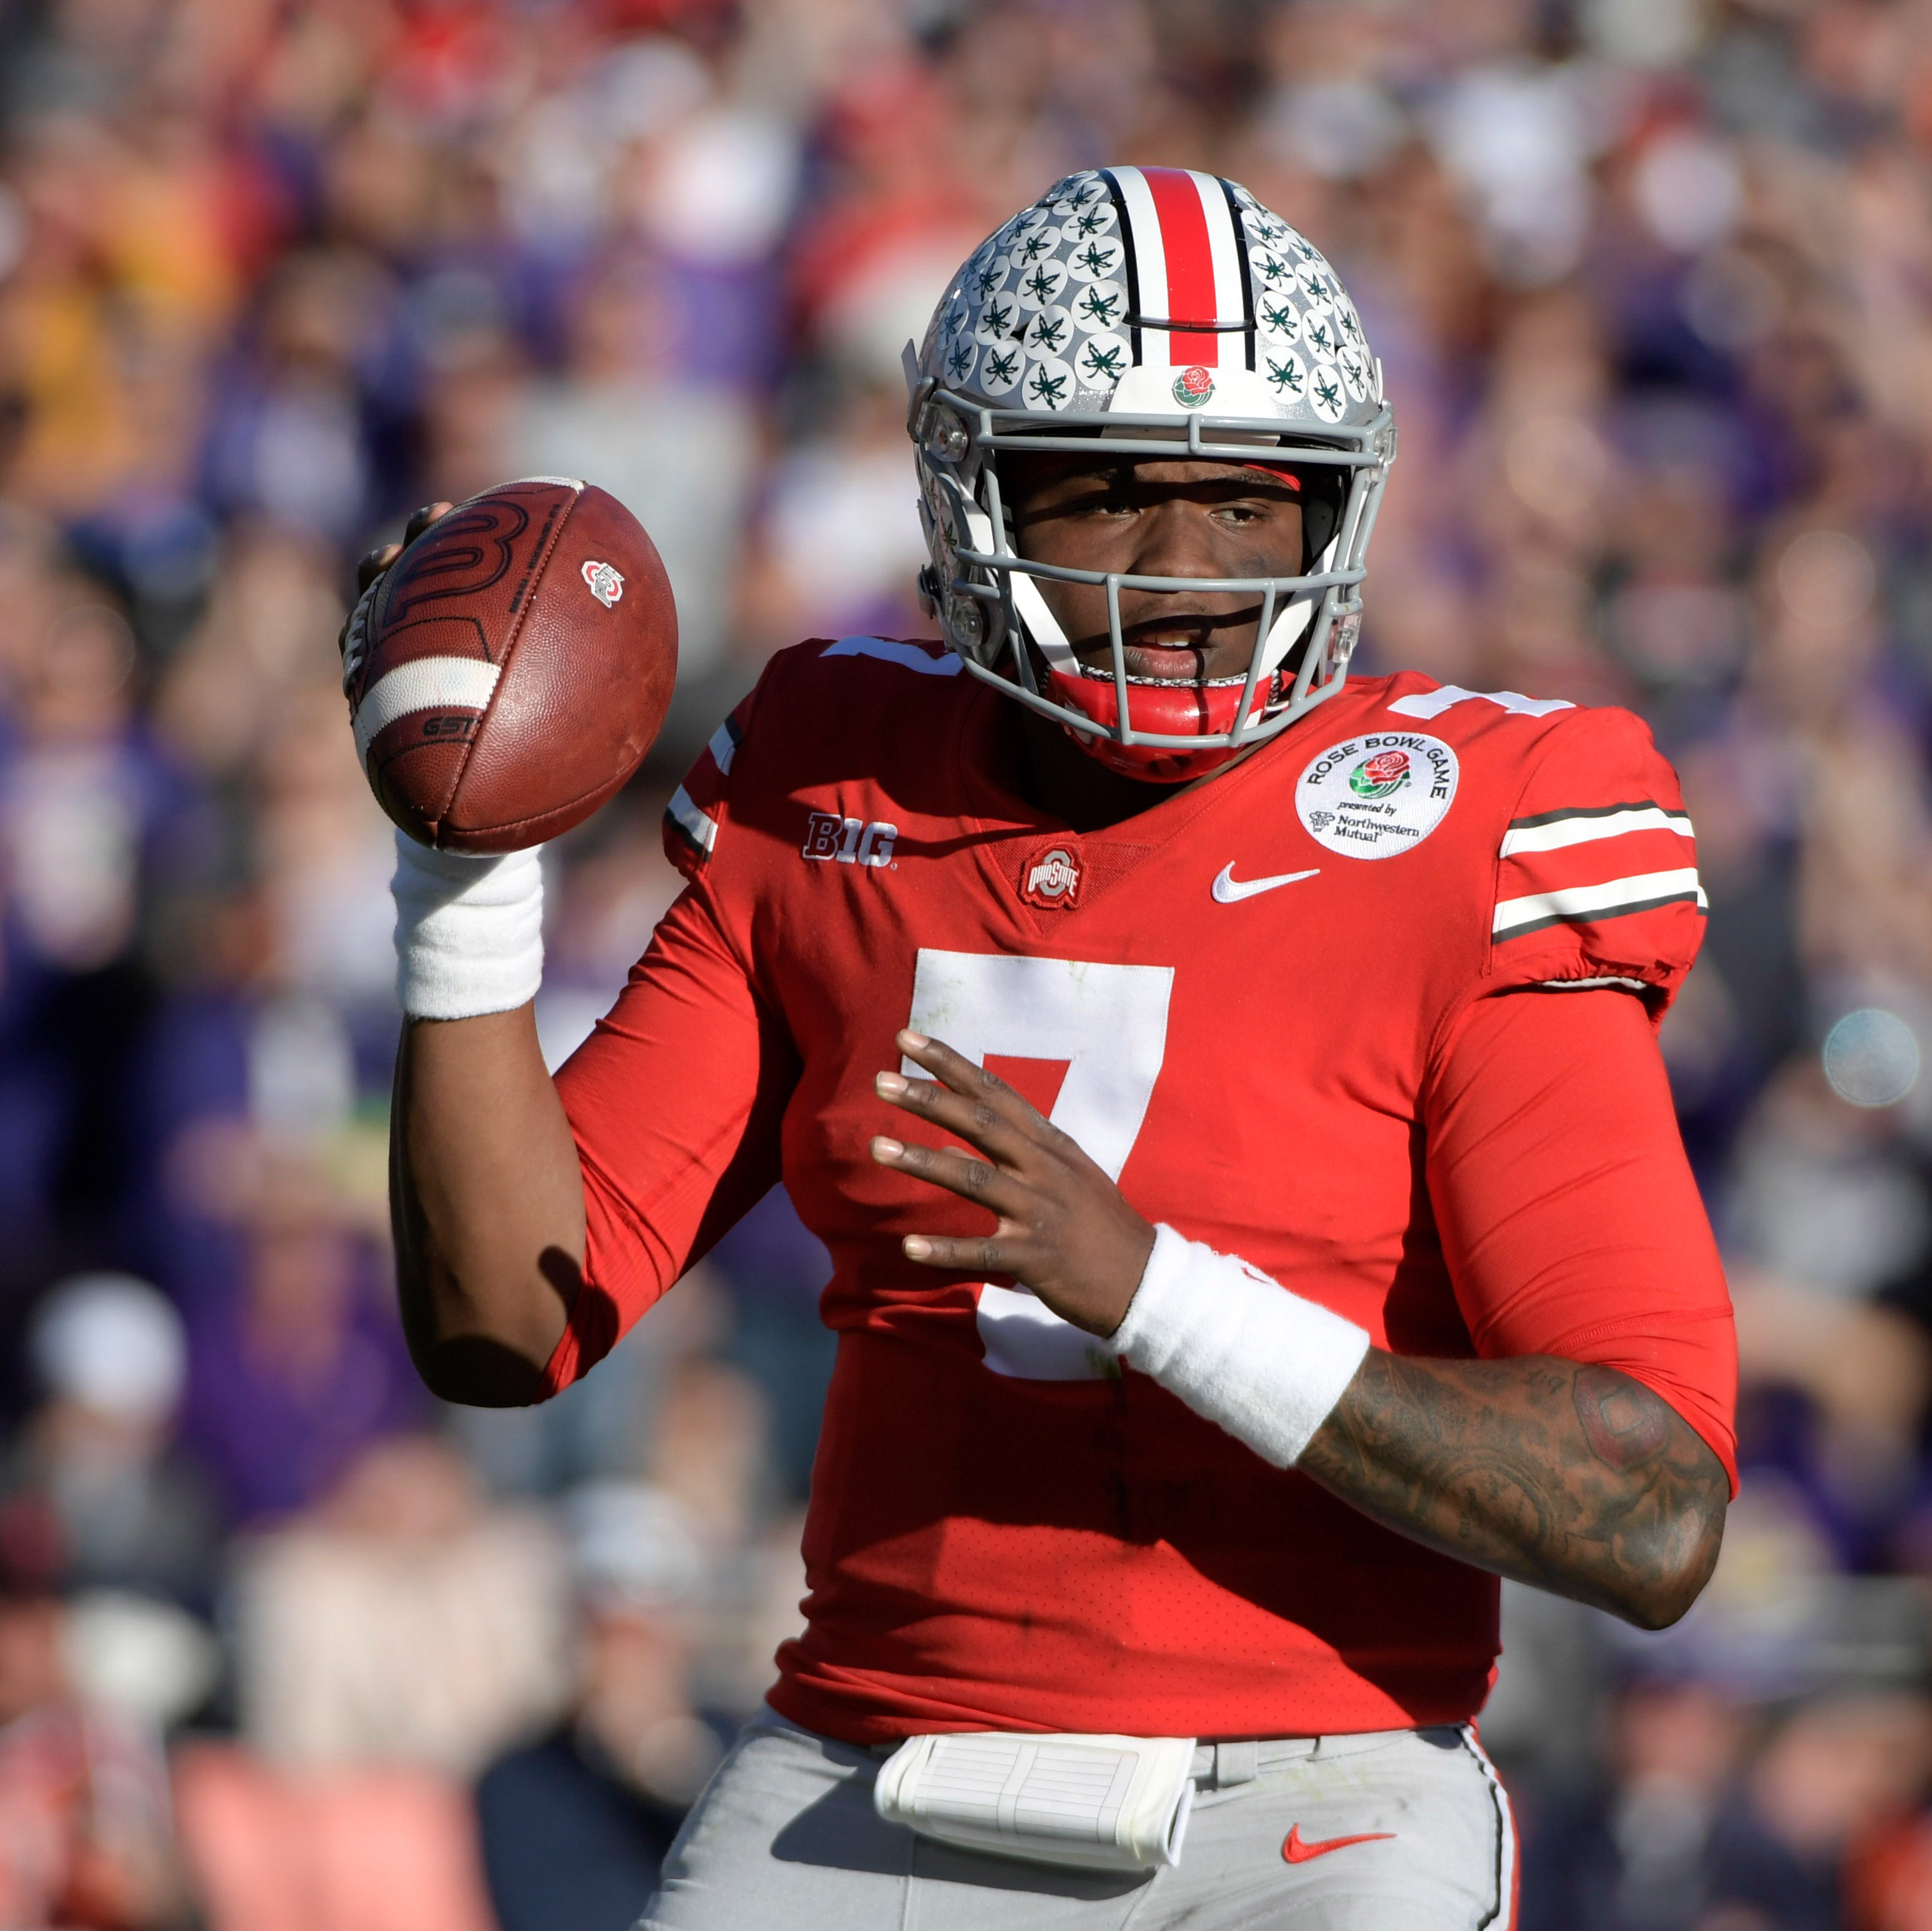 Dwayne Haskins likely makes NFL draft much more interesting for Arizona Cardinals